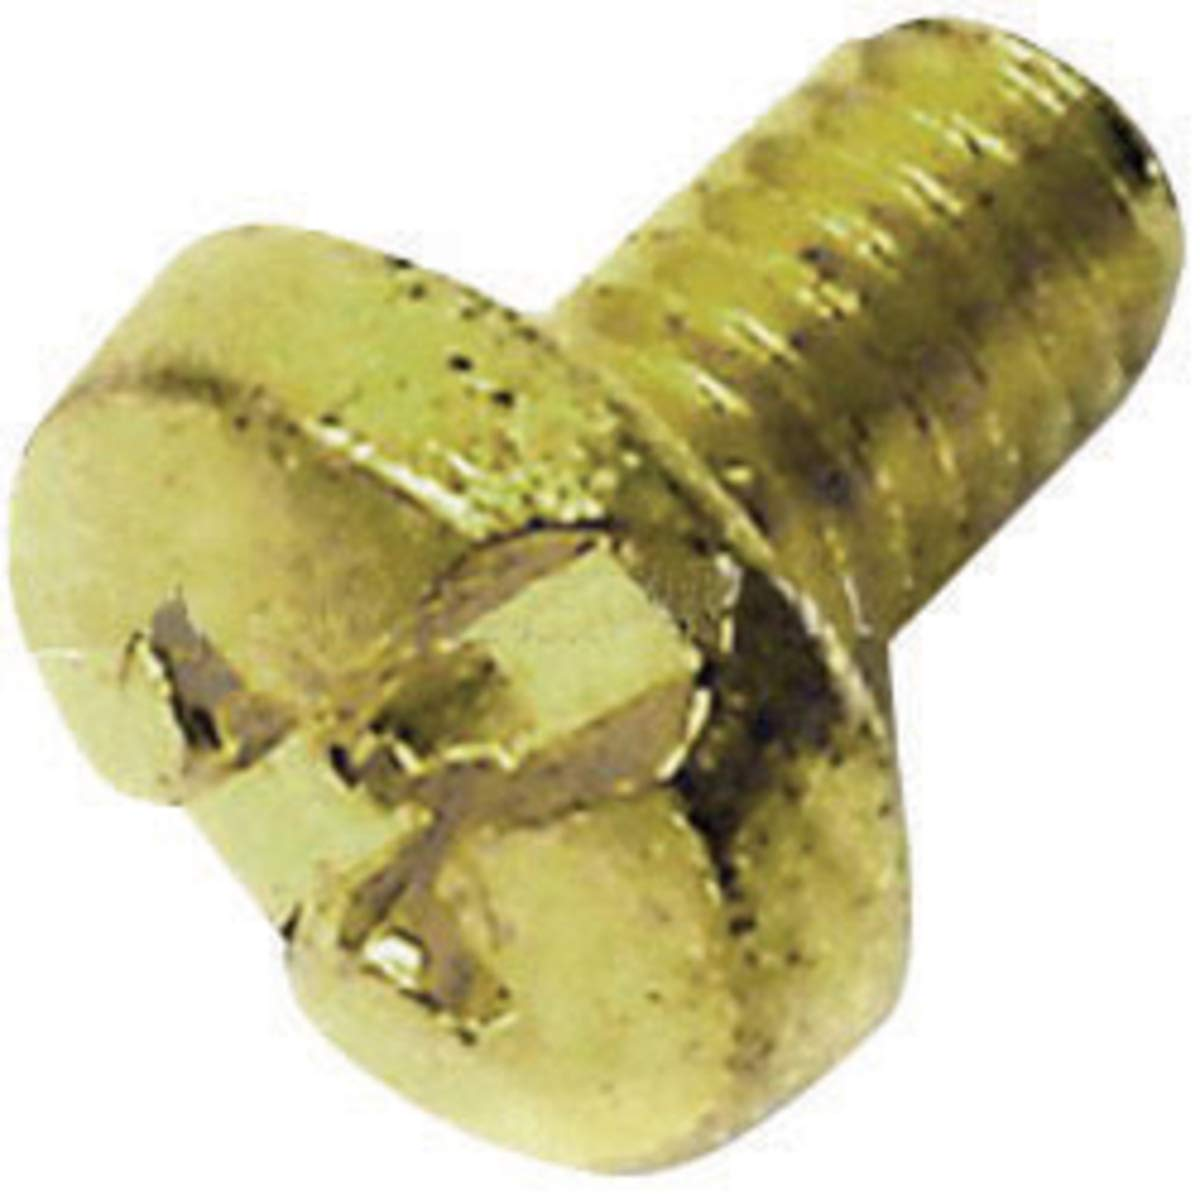 Milwaukee Brush Retaining Screw (For Use With Electric Drill/Driver, Reversing Drill And Drill Press) by Milwaukee Electric Tool Corporation (Image #1)